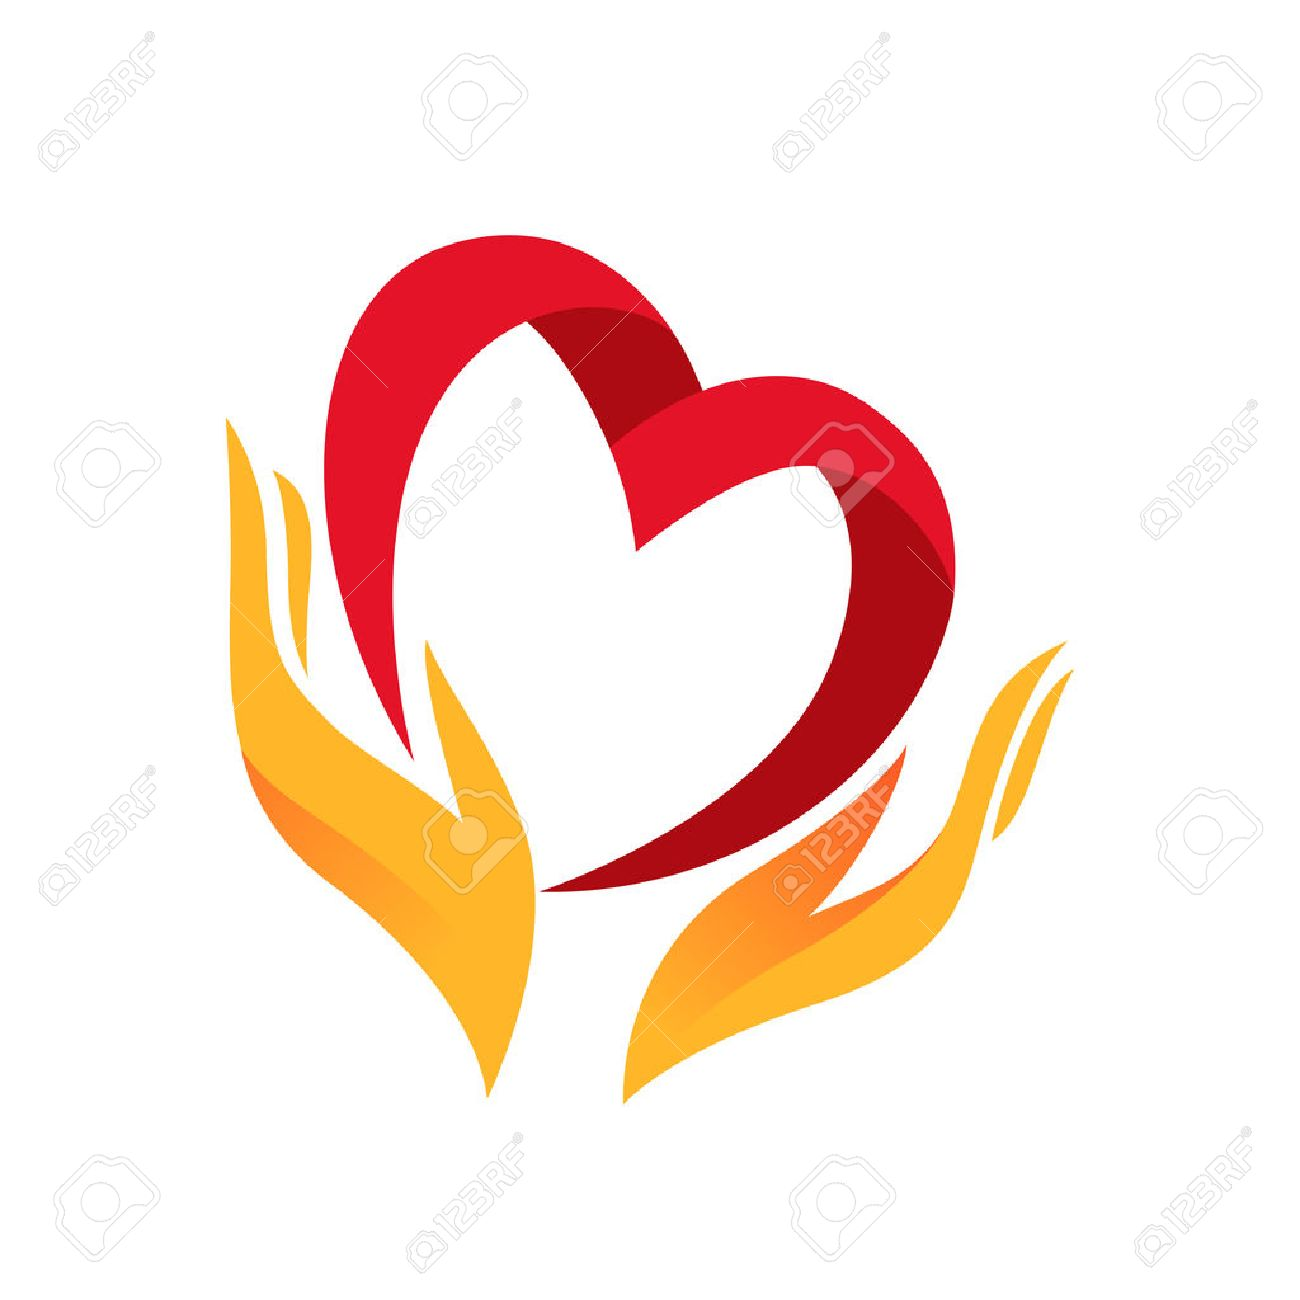 Heart in hand symbol sign icon logo template for charity heart in hand symbol sign icon logo template for charity health biocorpaavc